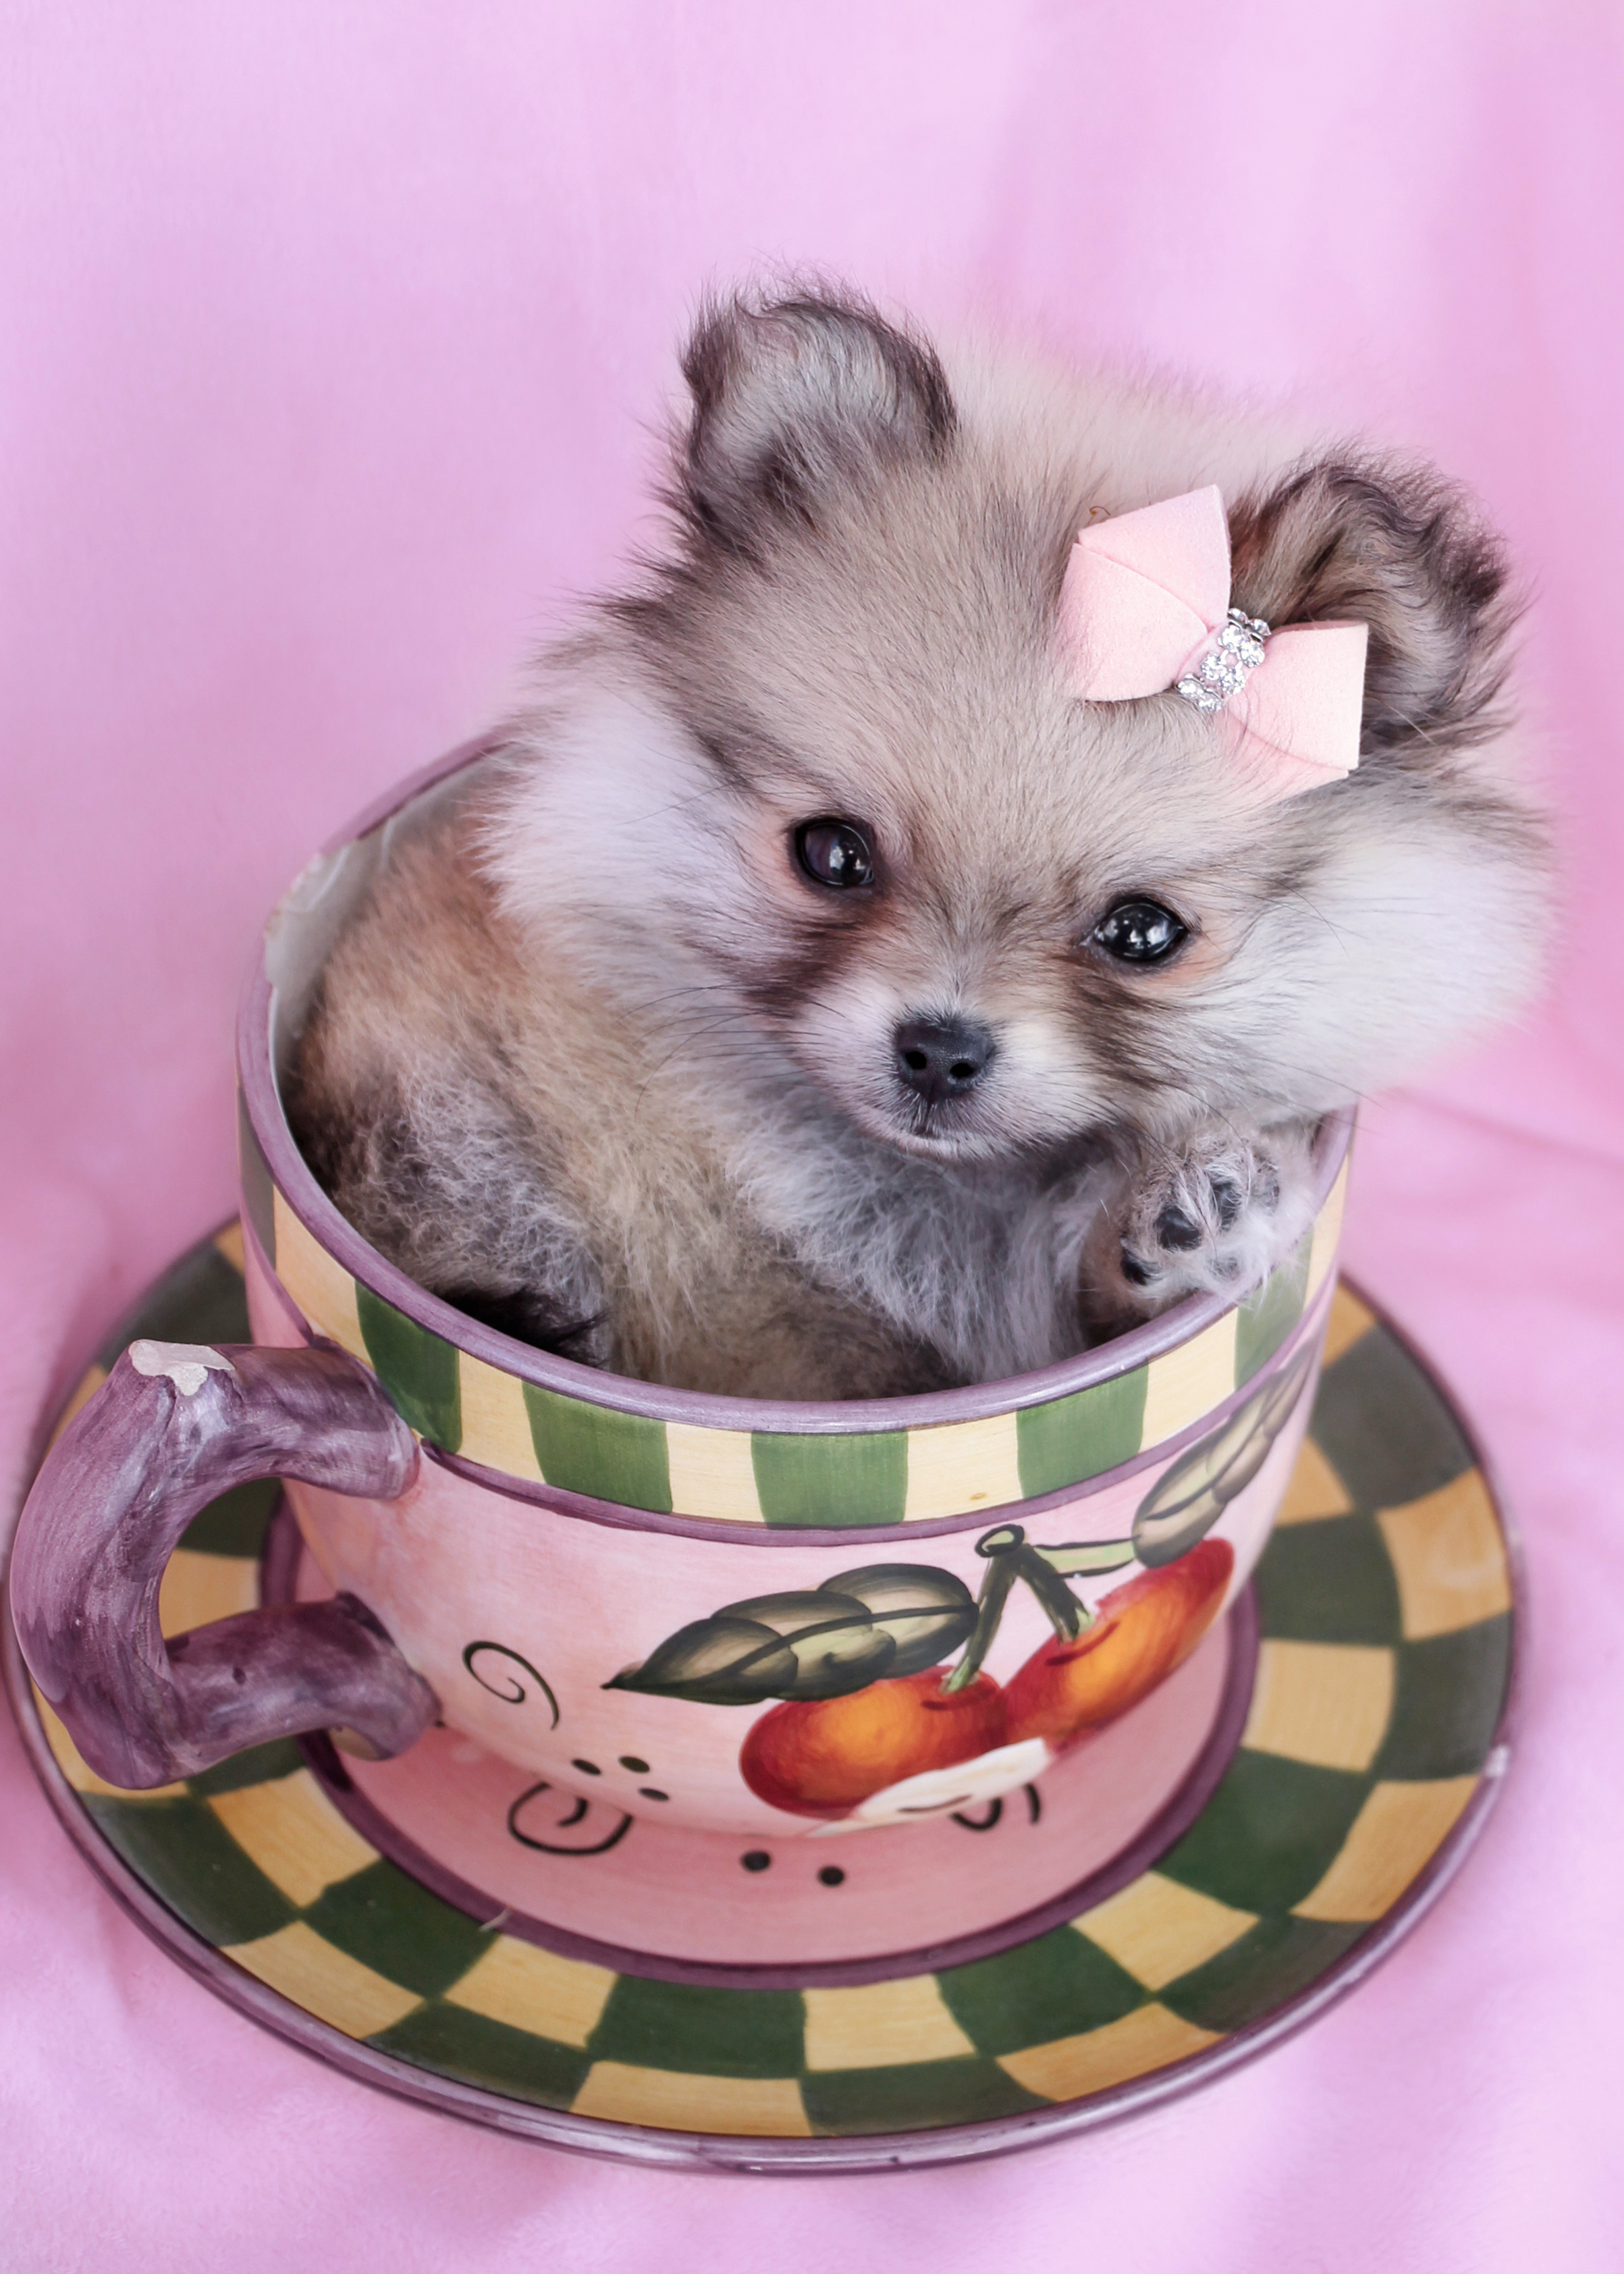 Teacup Pomeranian Puppy #021 For Sale